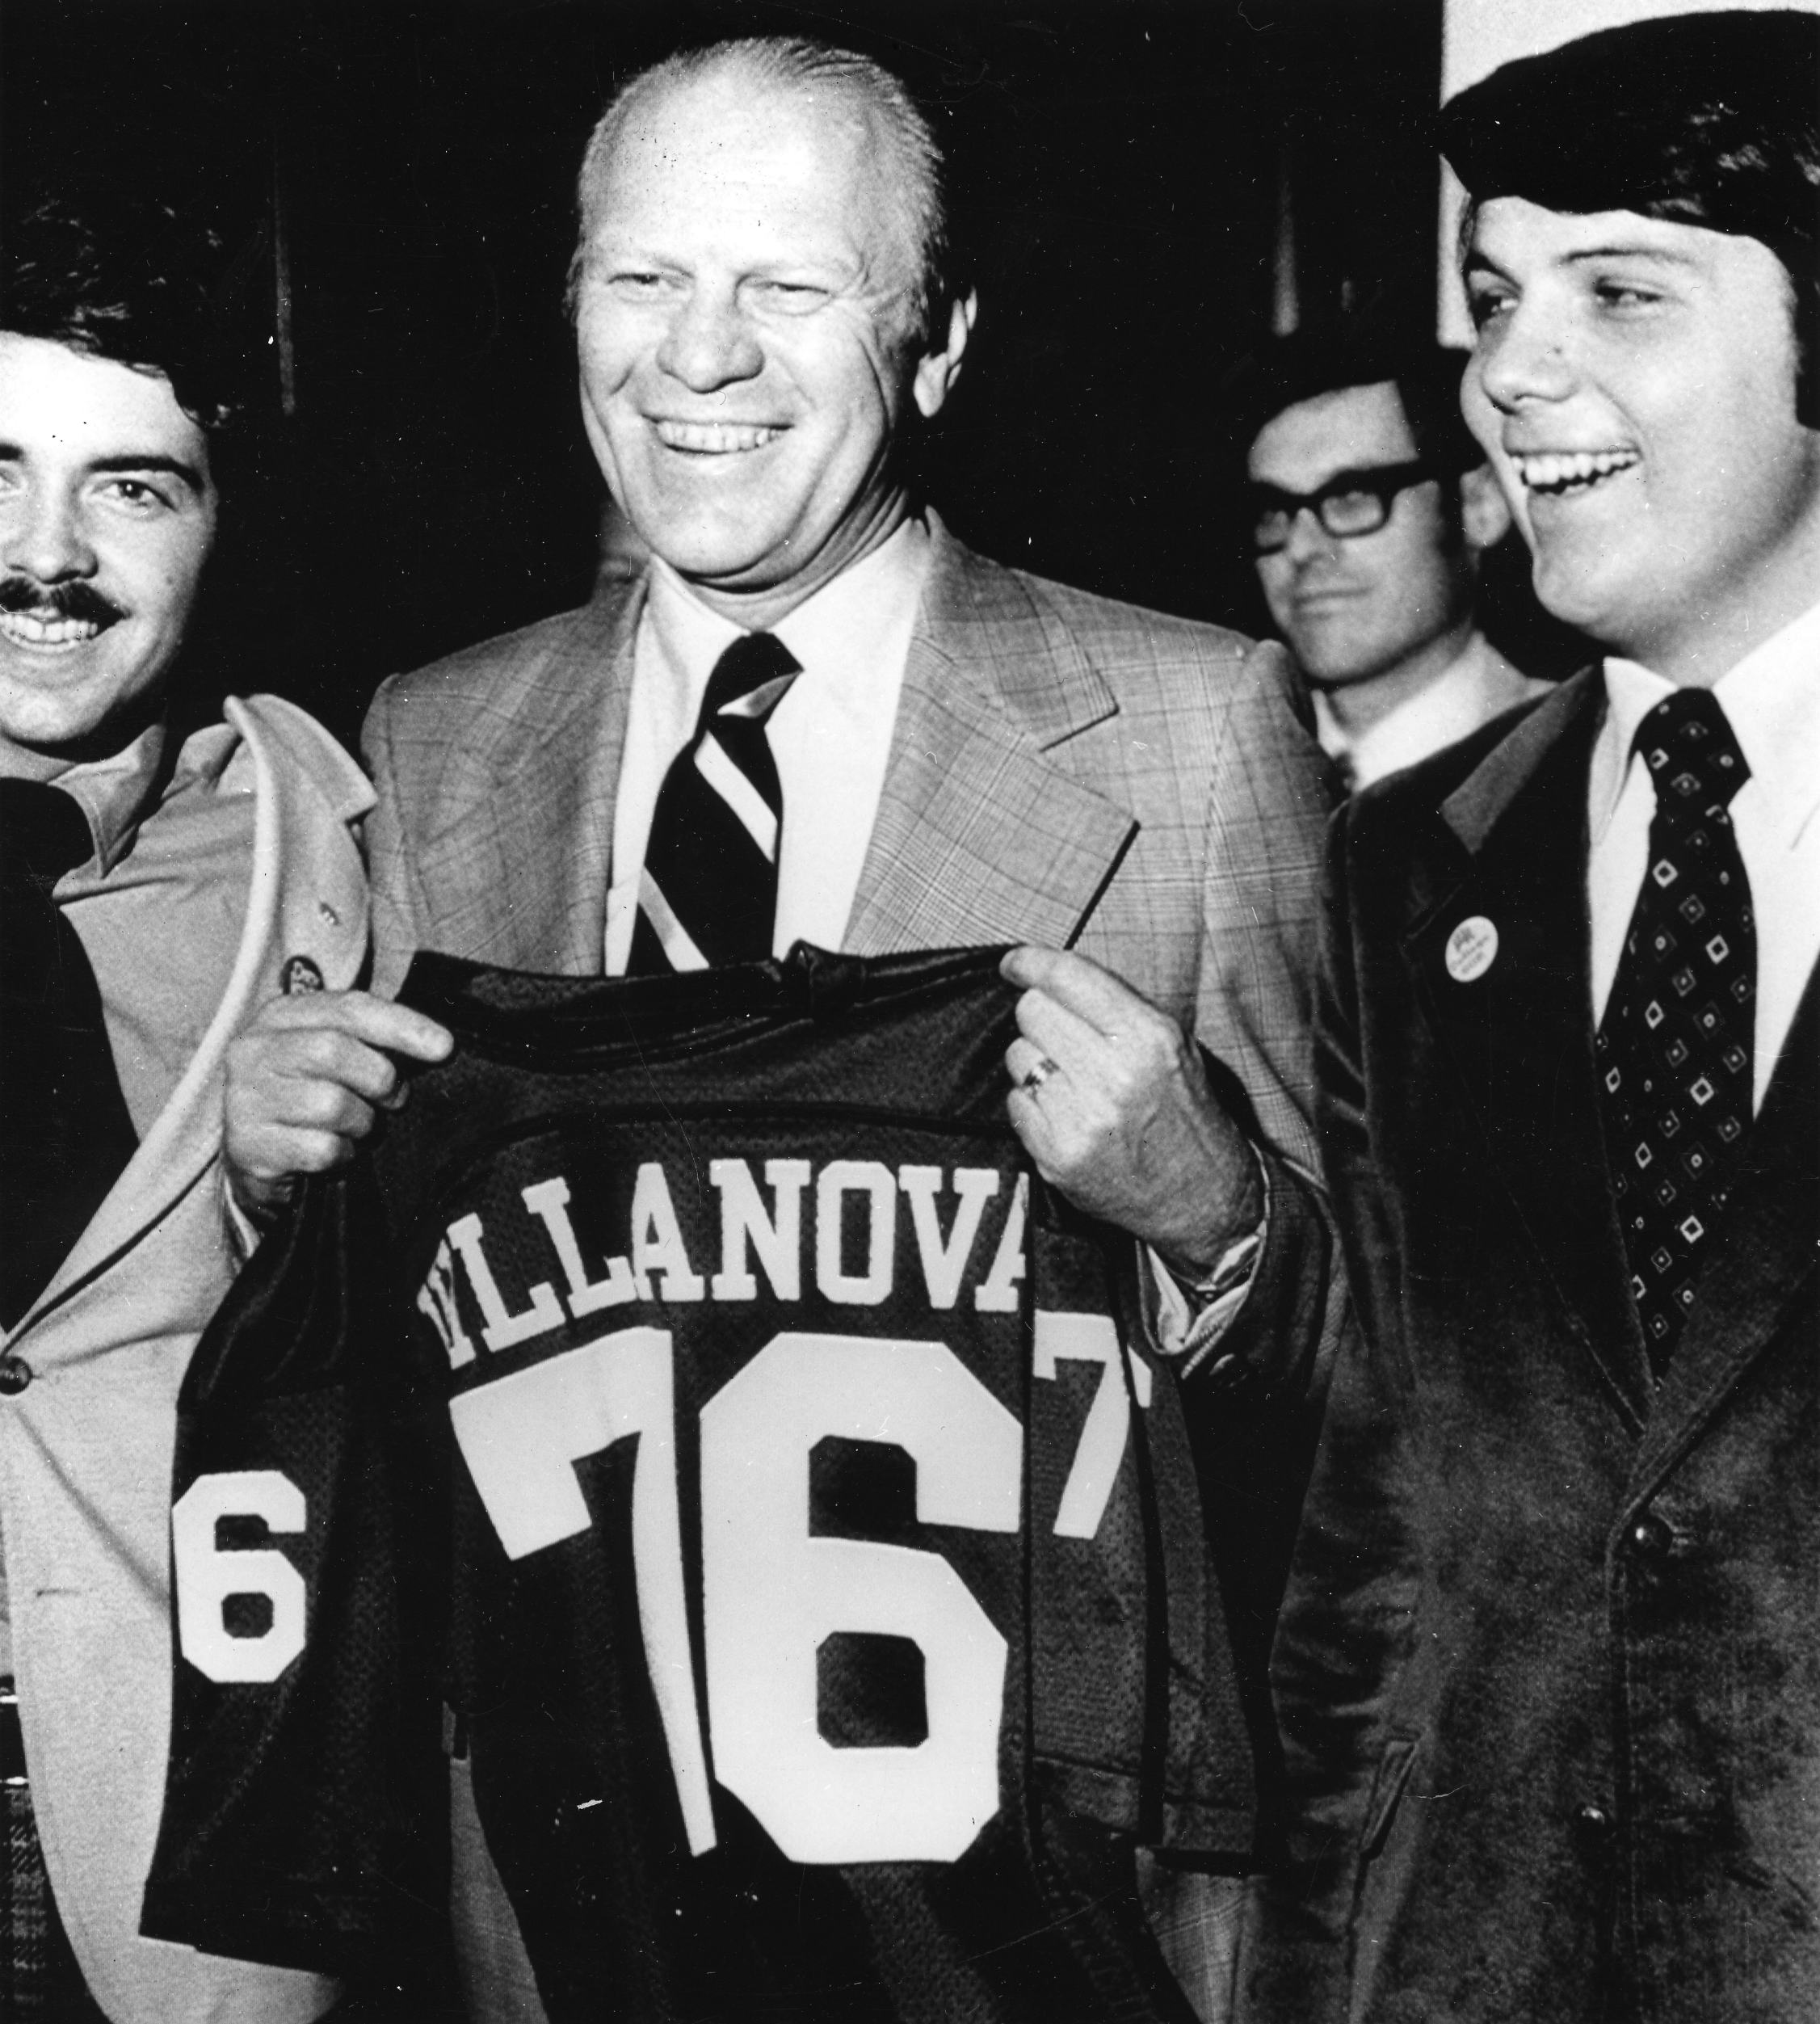 President Gerald R. Ford displays Villanova football jersey